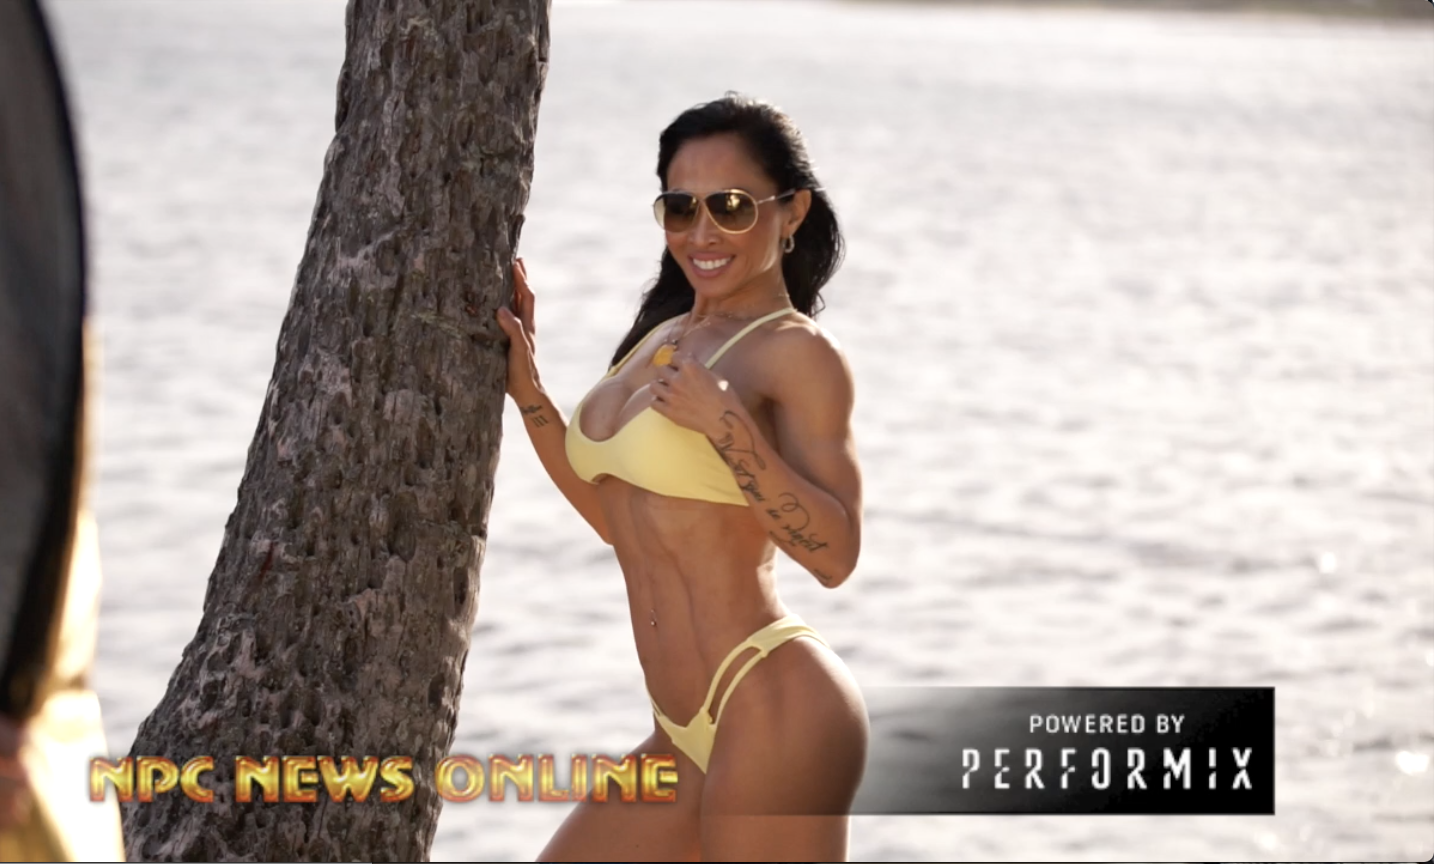 2018 J.M. Manion Hawaii Shoot Video With  IFBB Bikini Pro Geri Berger